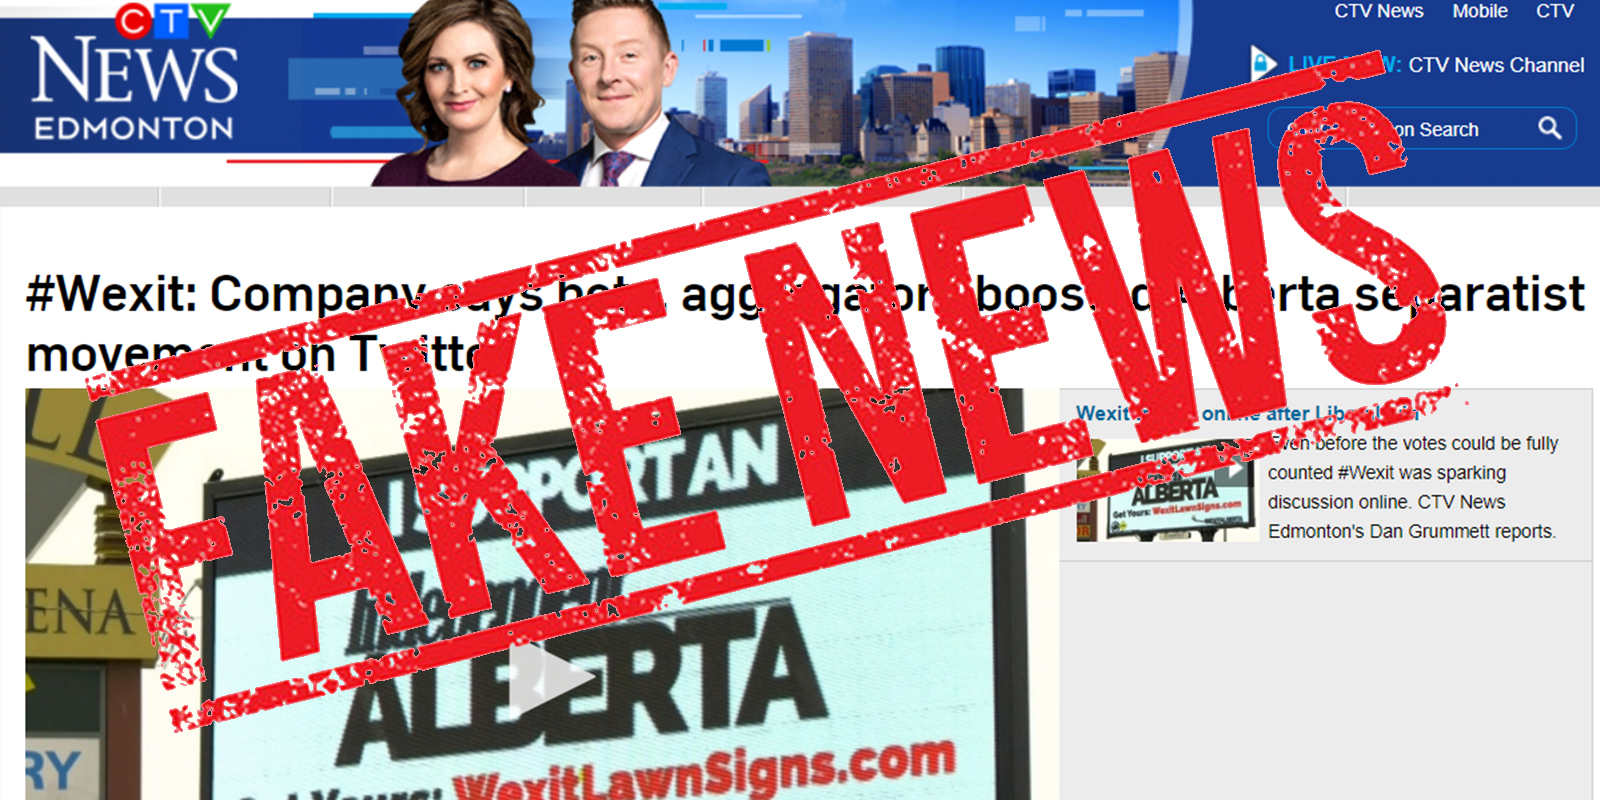 FAKE NEWS: CTV reports on dubious claim bots gave #Wexit big boost